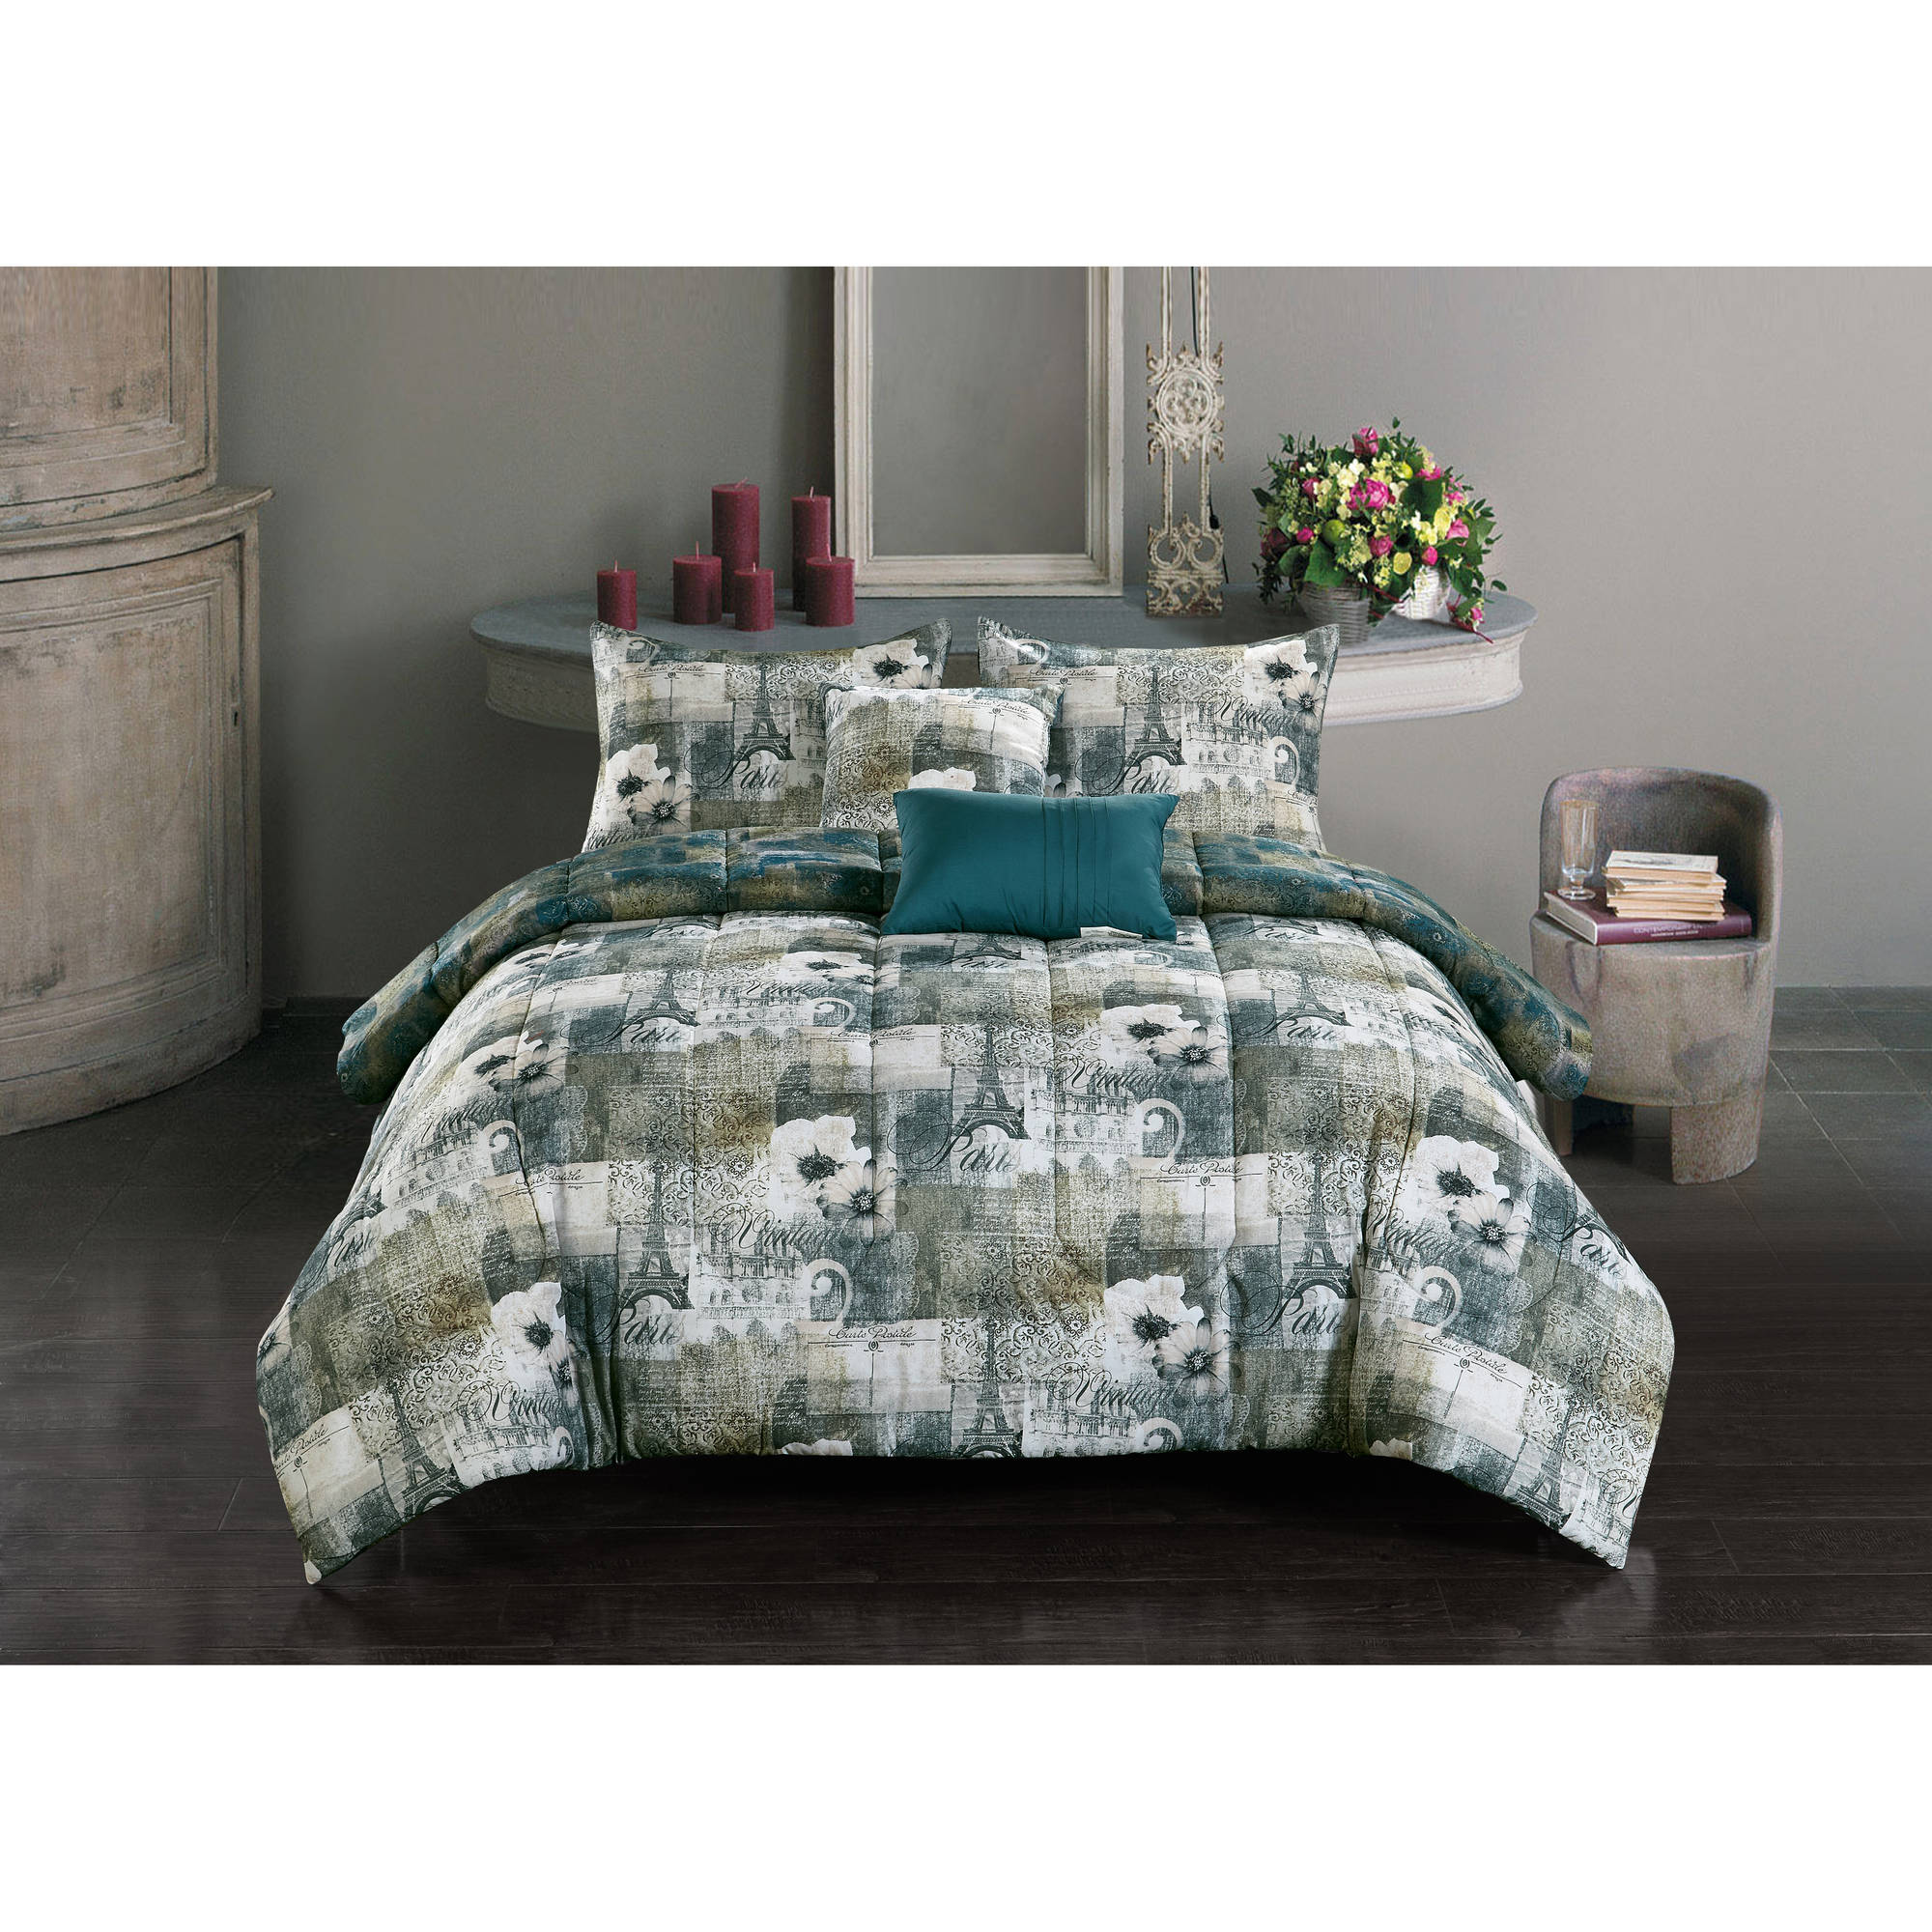 Casa Trianon 5-Piece Bed-in-a-Bag Bedding Set